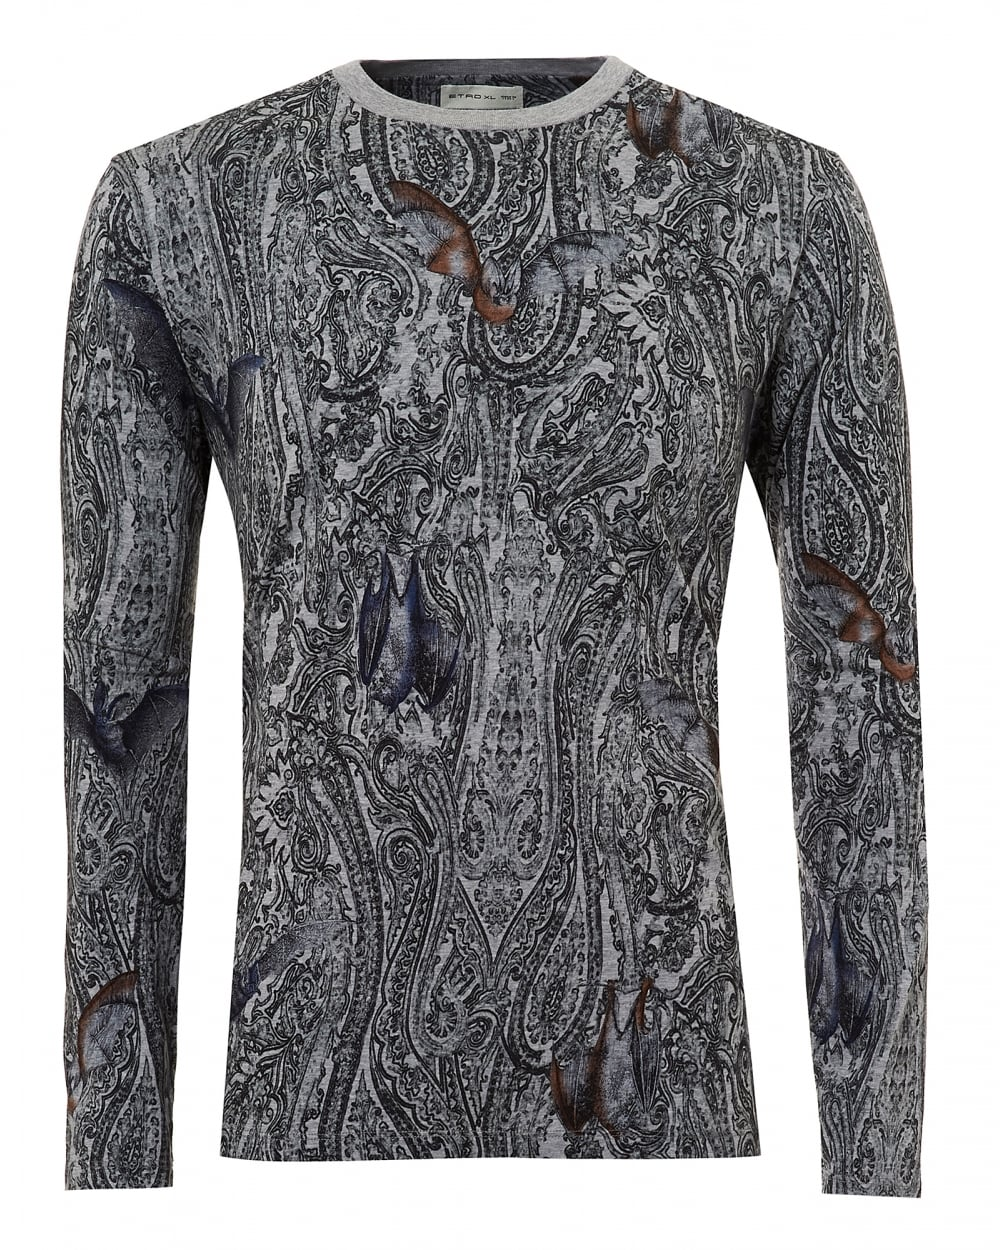 Footlocker For Sale Outlet Locations Cheap Online paisley T-shirt - Grey Etro y1Sd6jL